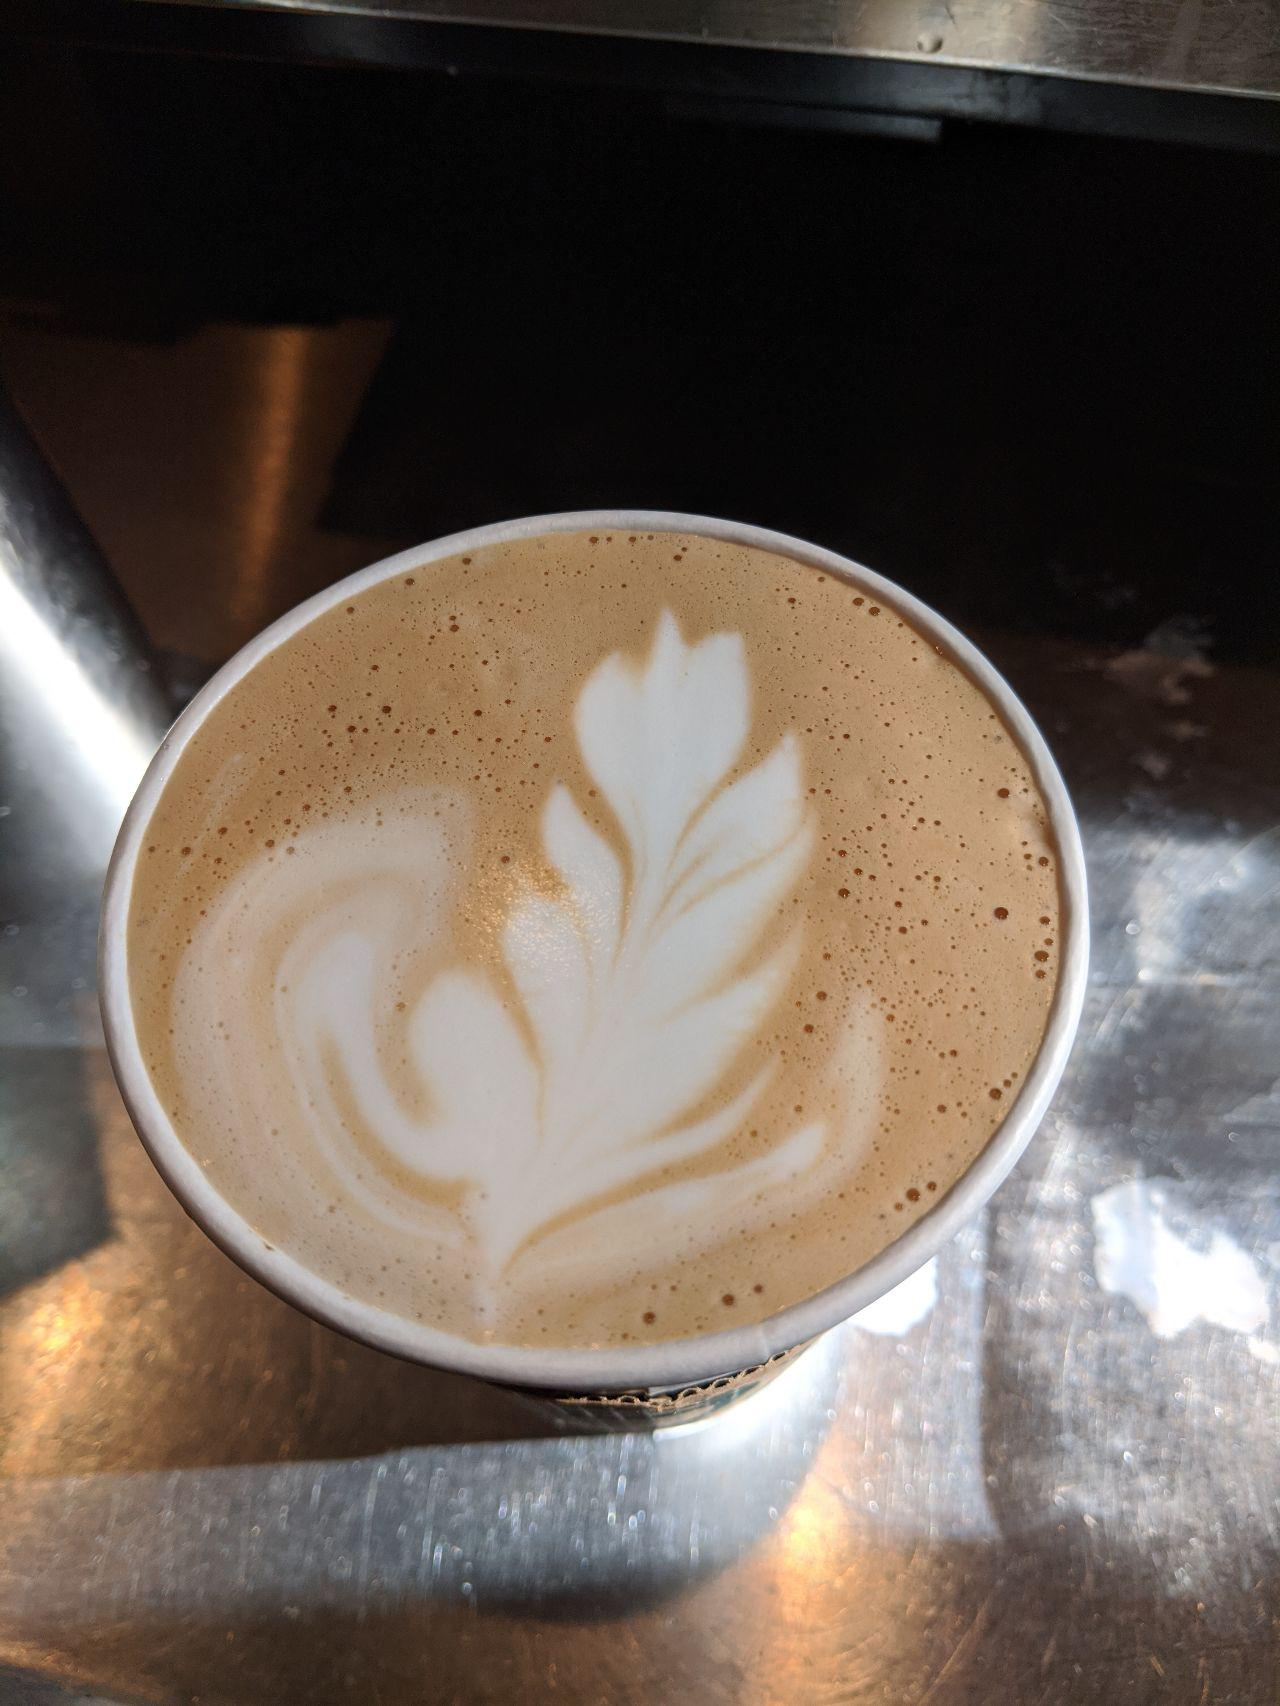 The top of a Flat White, with a white flower/leaf in the foam.